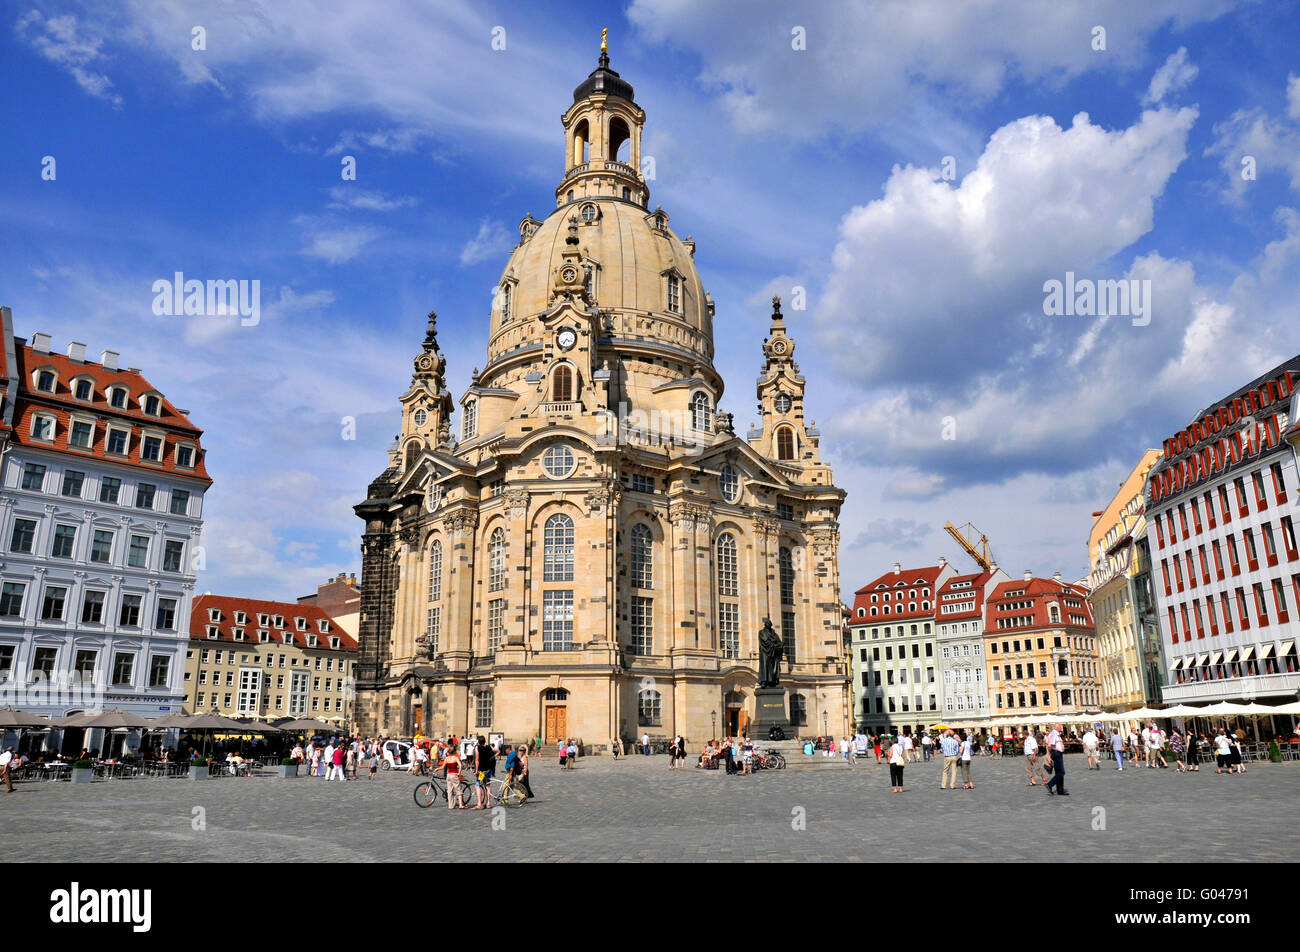 Dresden Frauenkirche, Church of Our Lady, Neumarkt, Dresden, Saxony, Germany / Dresdner Frauenkirche Stock Photo